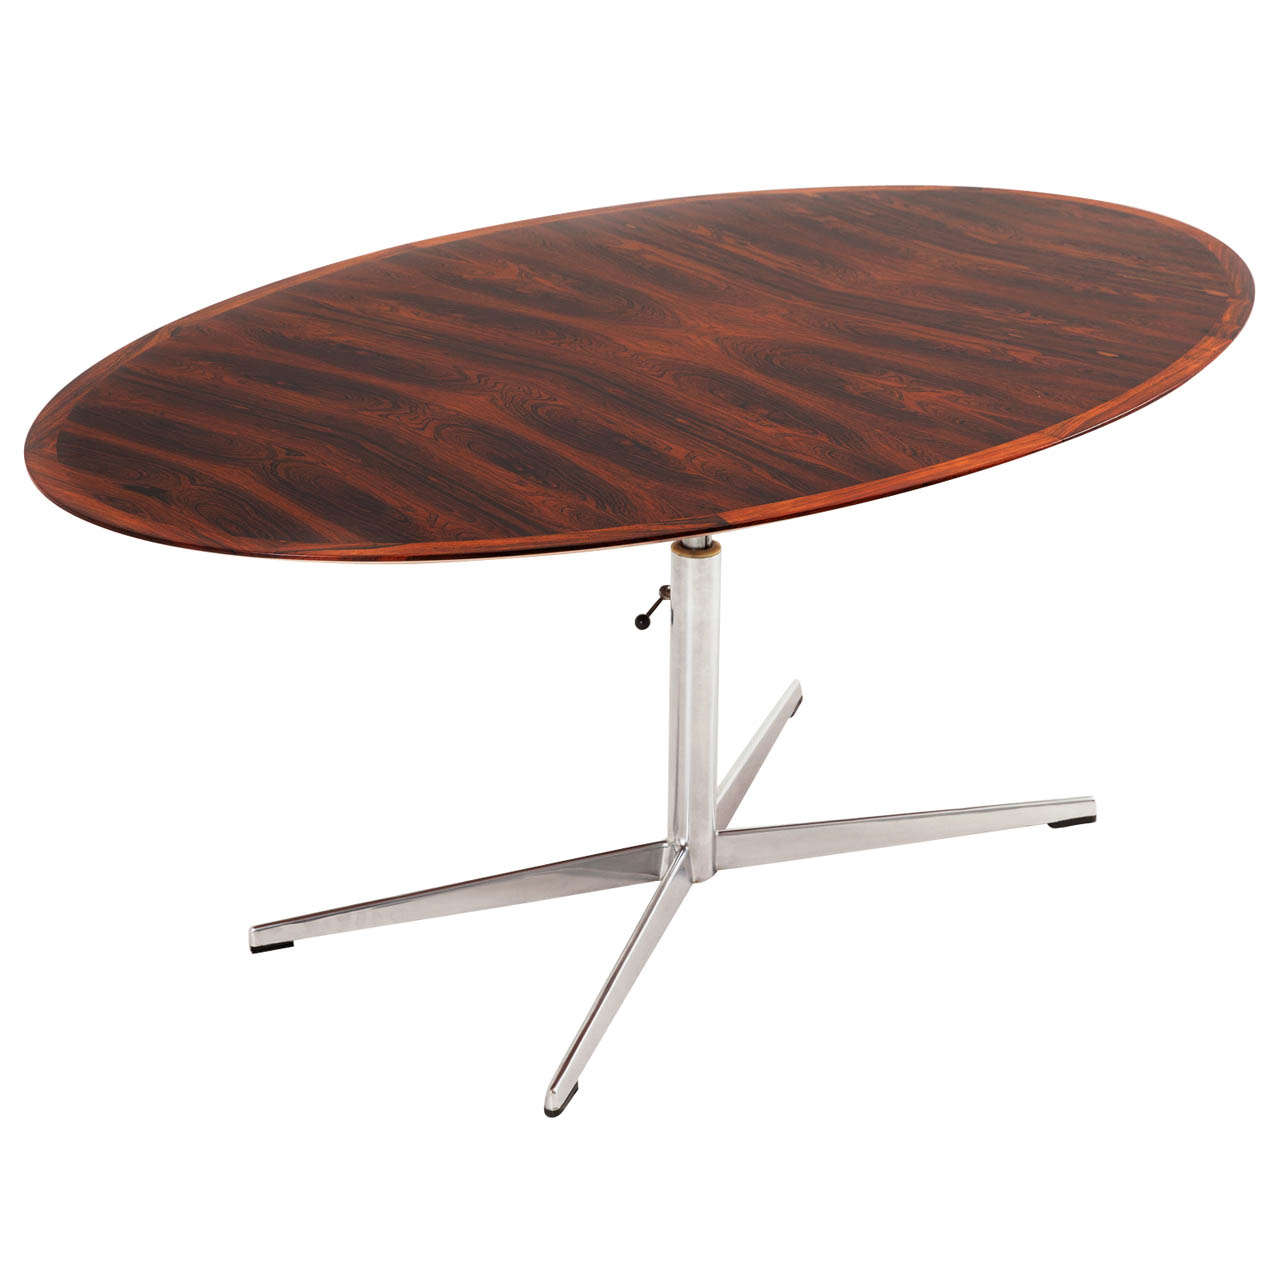 Oval Rosewood Table With Height Adjustable Pedestal Base At 1stdibs